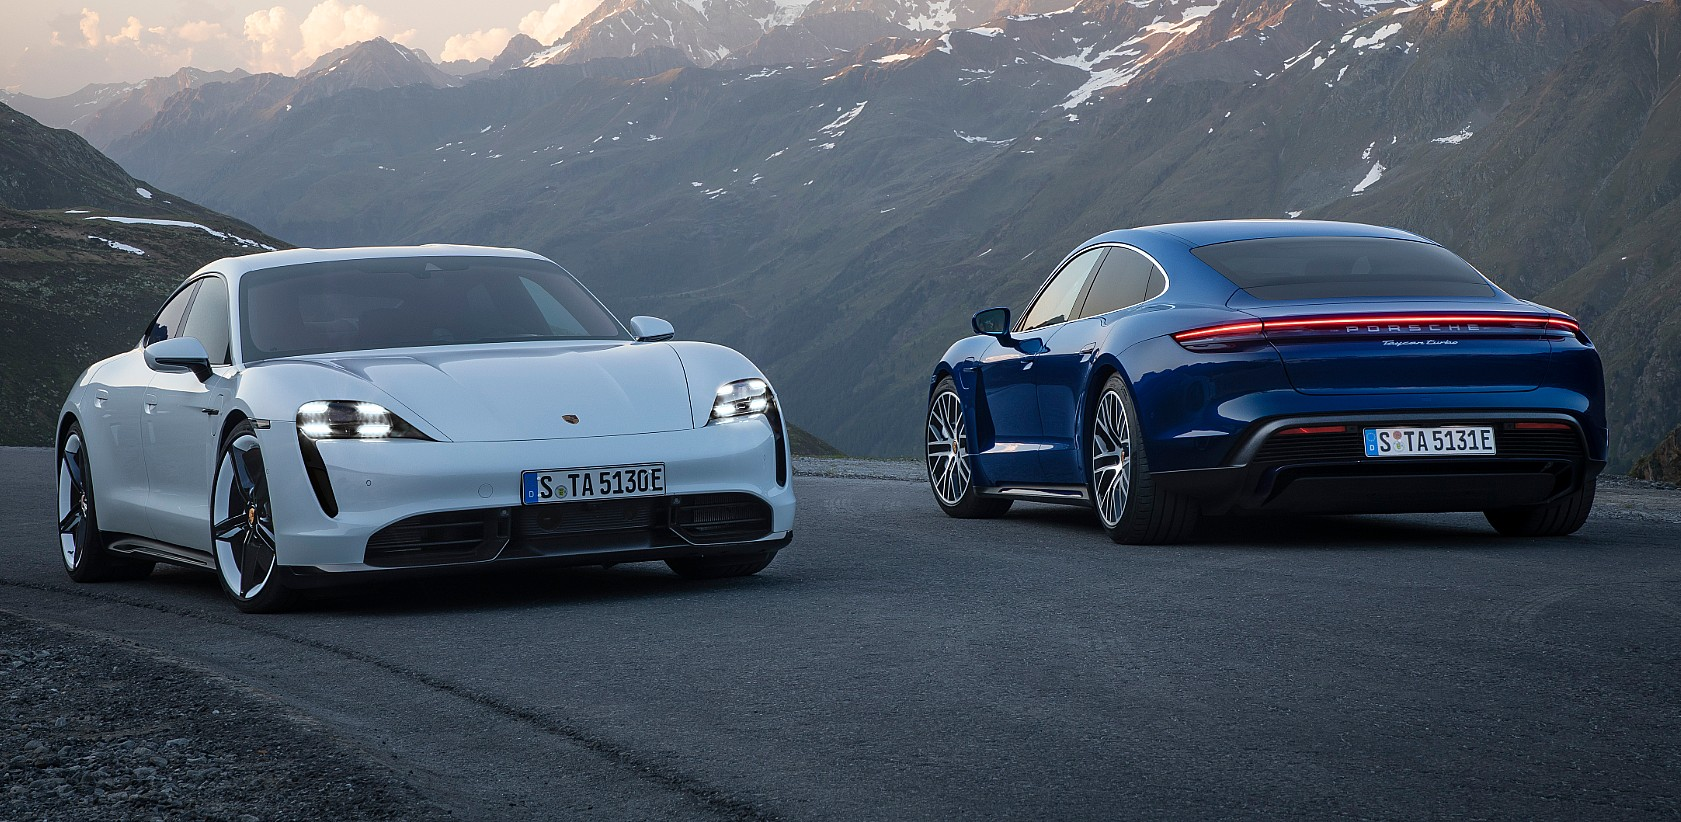 Porsche Taycan Turbo Vs Turbo S: Price, Performance, And